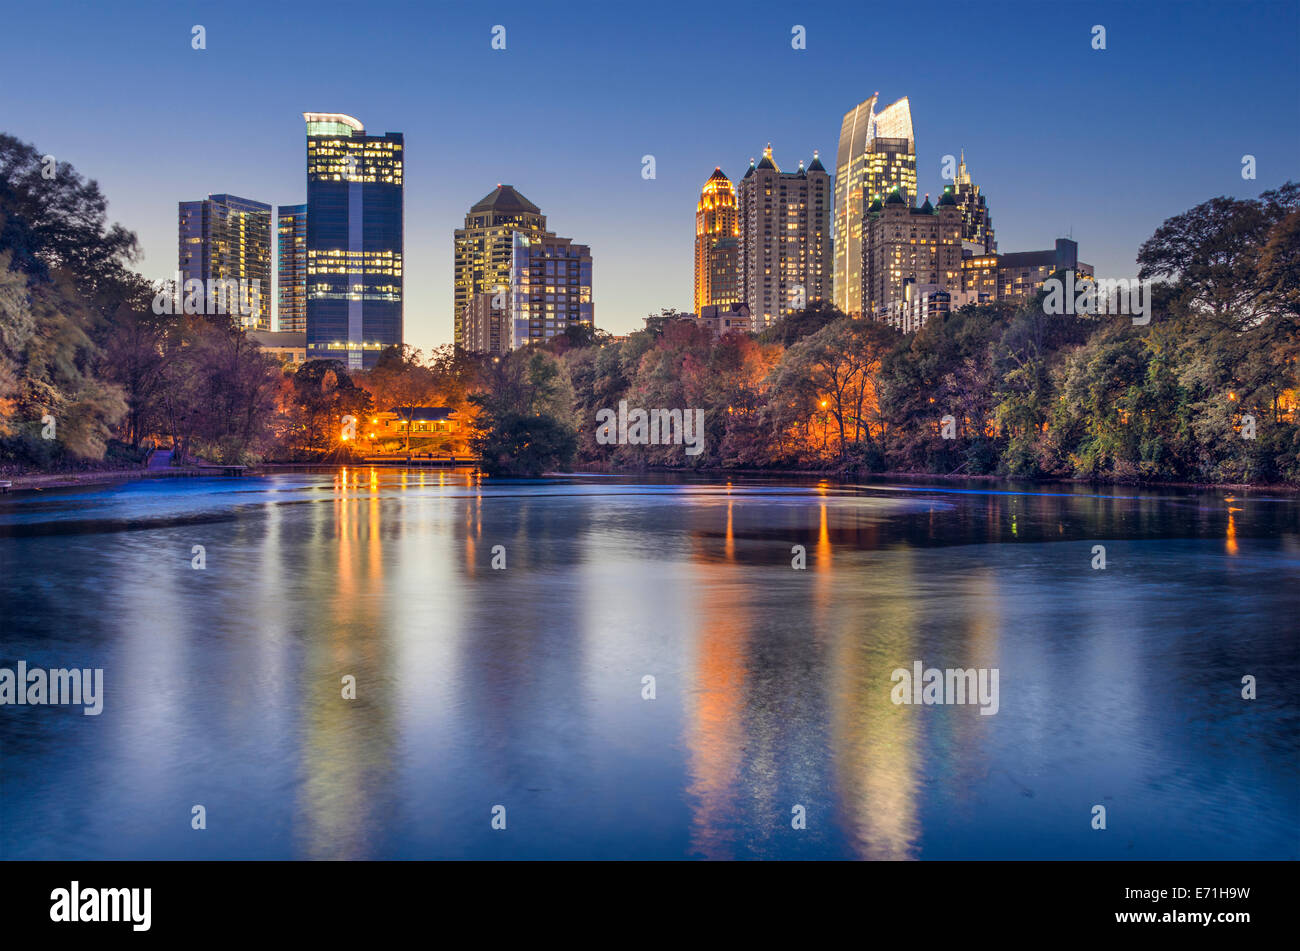 atlanta georgia usa midtown skyline from piedmont park stock photo 73179621 alamy. Black Bedroom Furniture Sets. Home Design Ideas